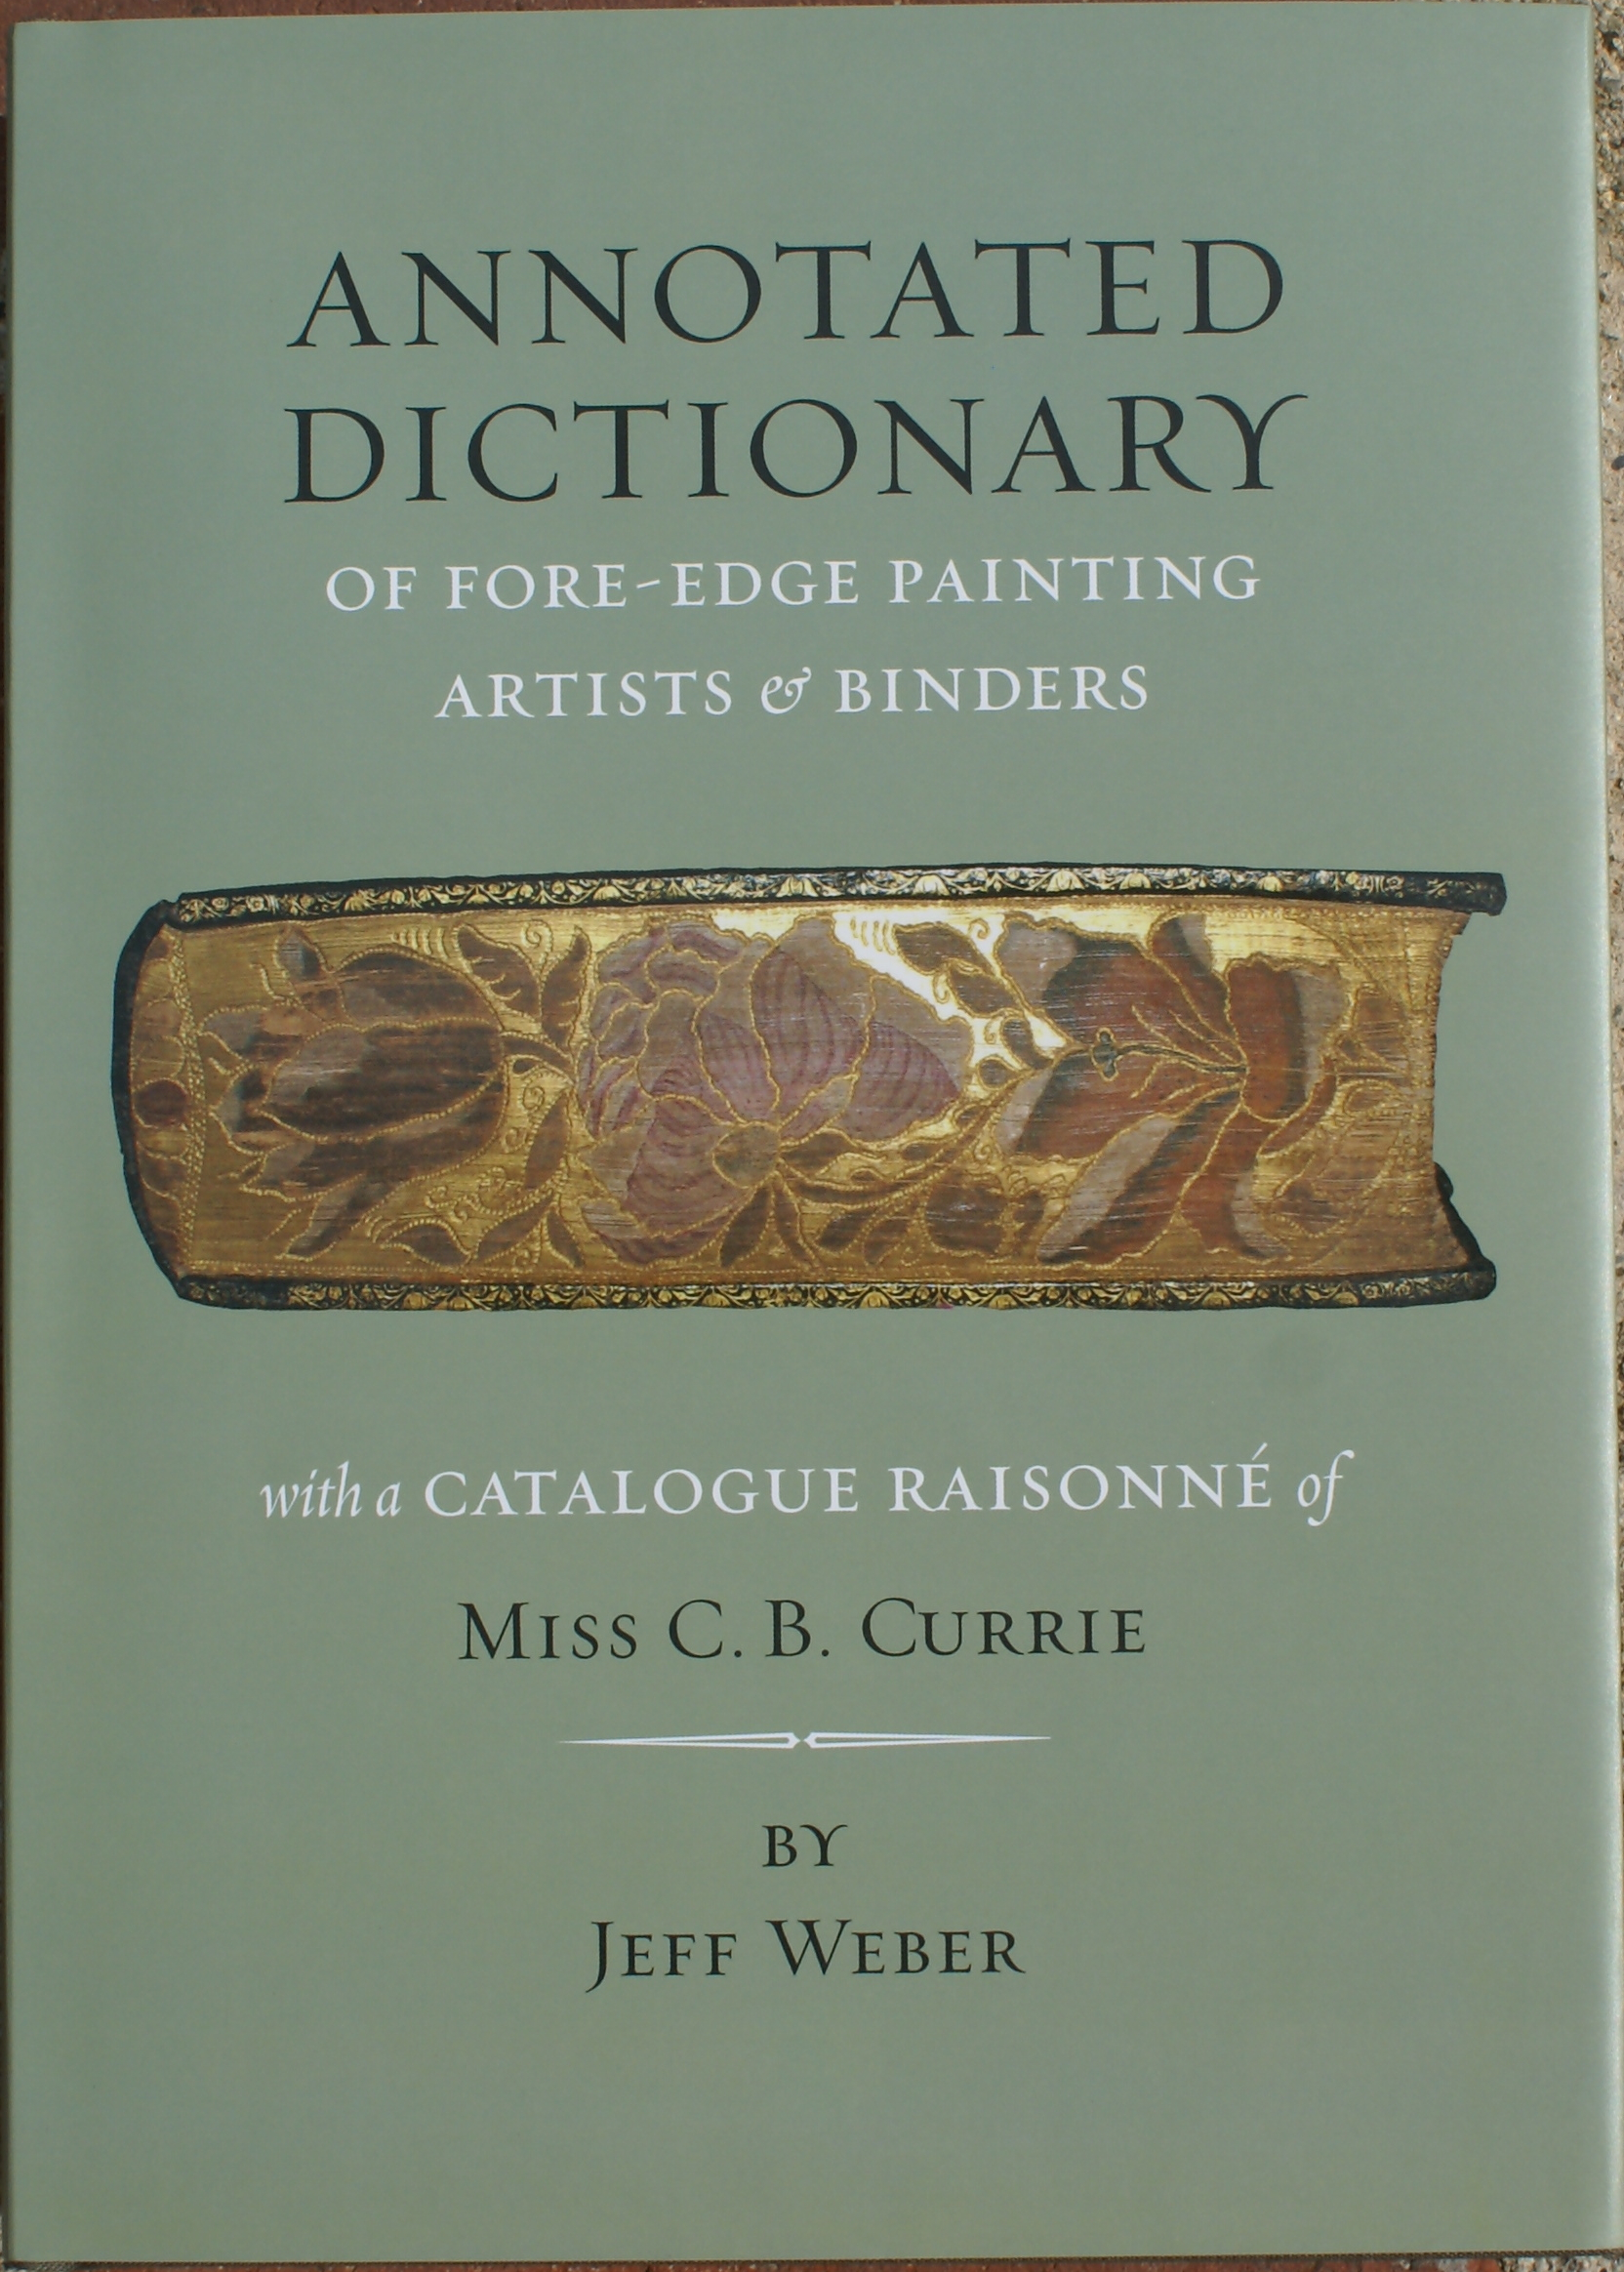 Image for An Annotated Dictionary of Fore-edge Painting Artists & Binders (Mostly English & American). The Fore-edge Paintings of Miss C. B. Currie; with a Catalogue Raisonne.